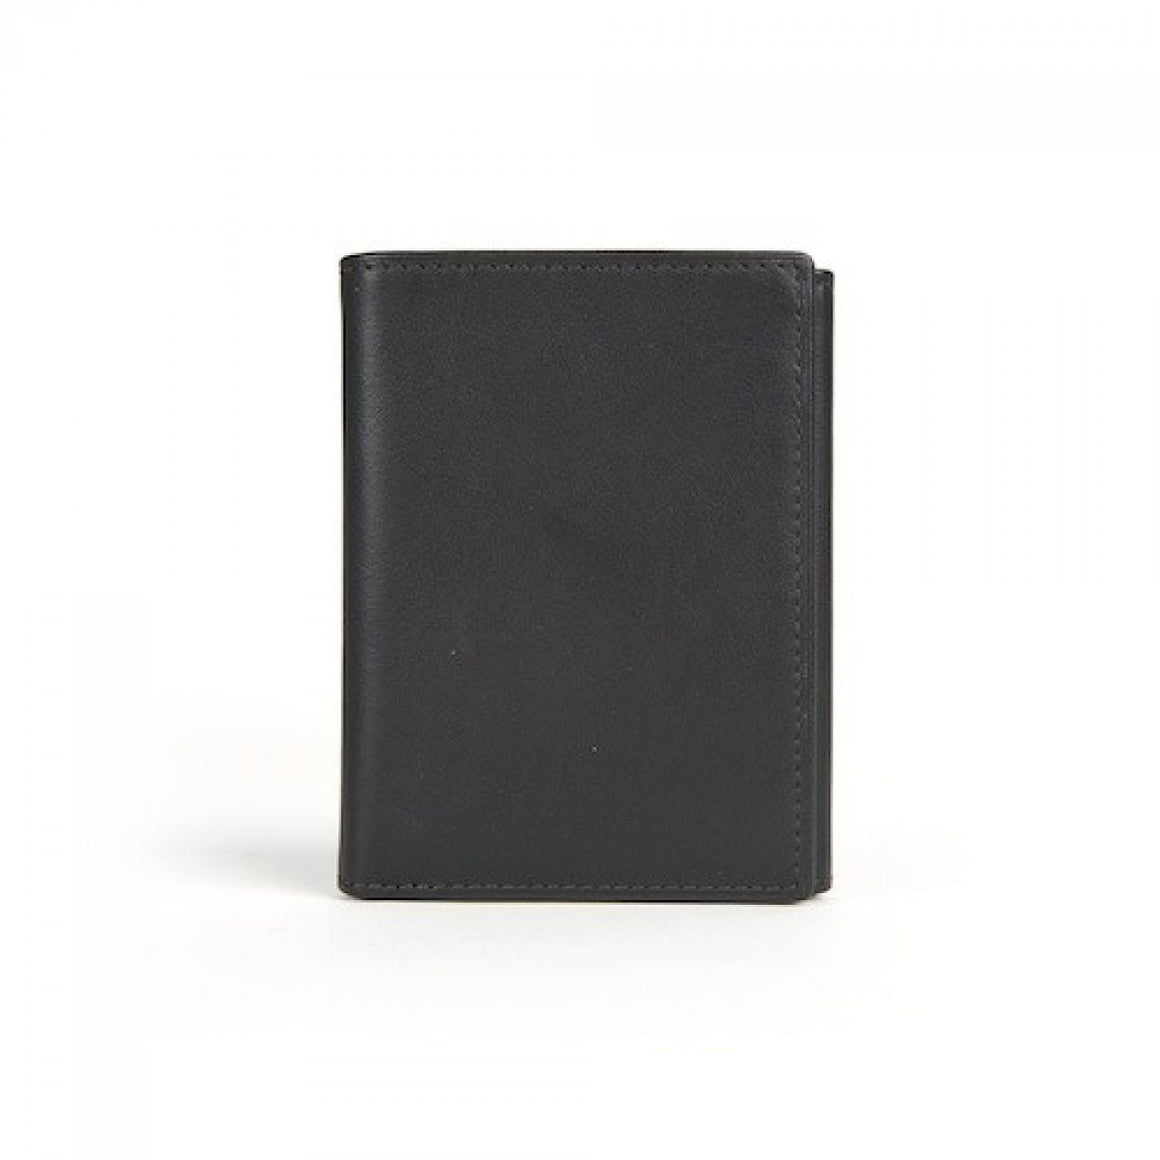 Bosca Nappa Leather Trifold Dual ID Wallet Black